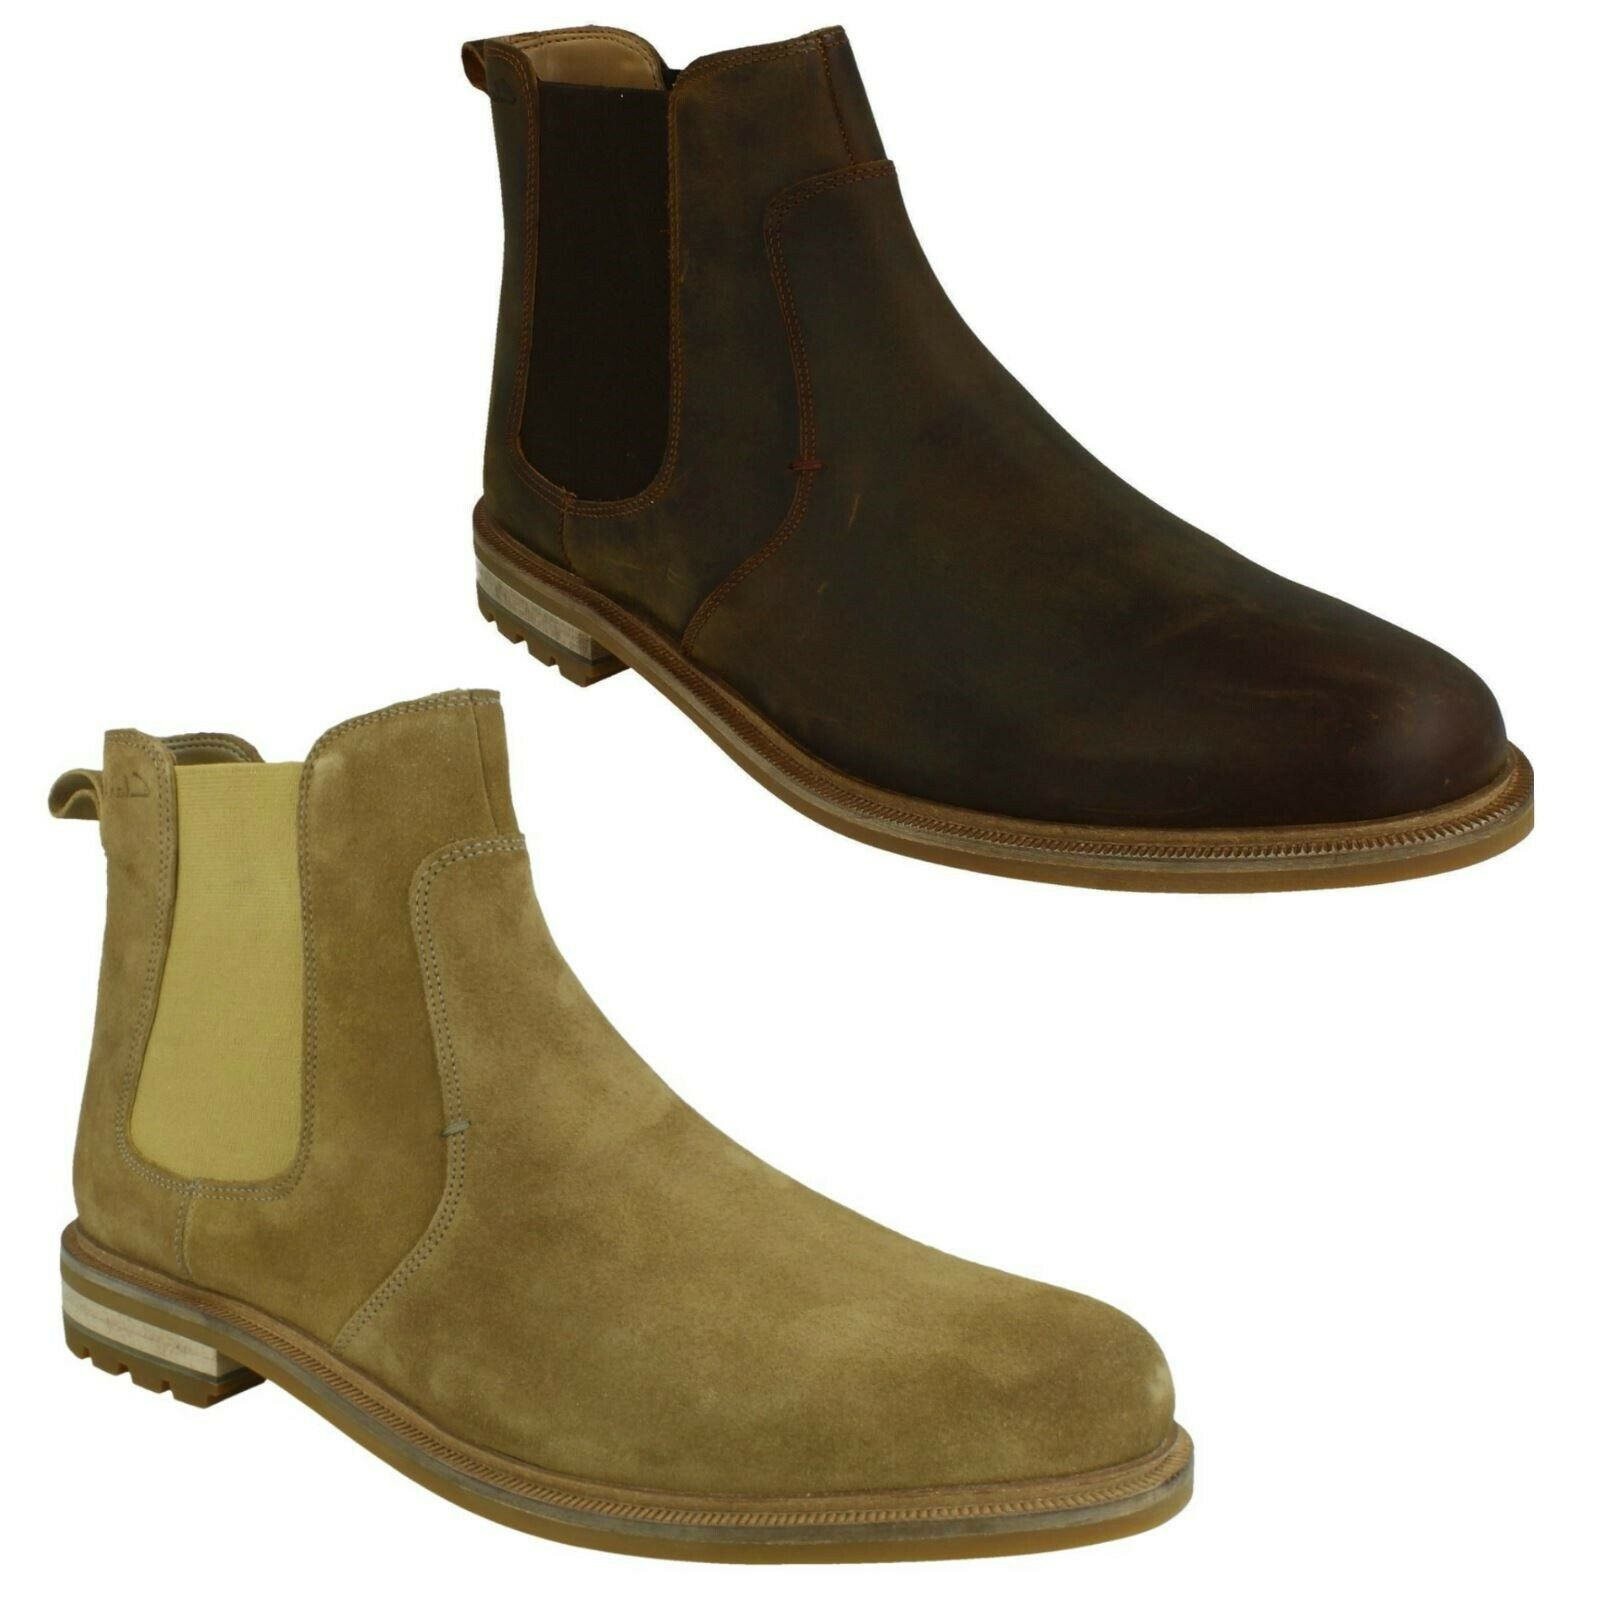 FOXWELL TOP MENS CLARKS LEATHER WINTER ANKLE CASUAL SMART CHELSEA BOOTS SIZE